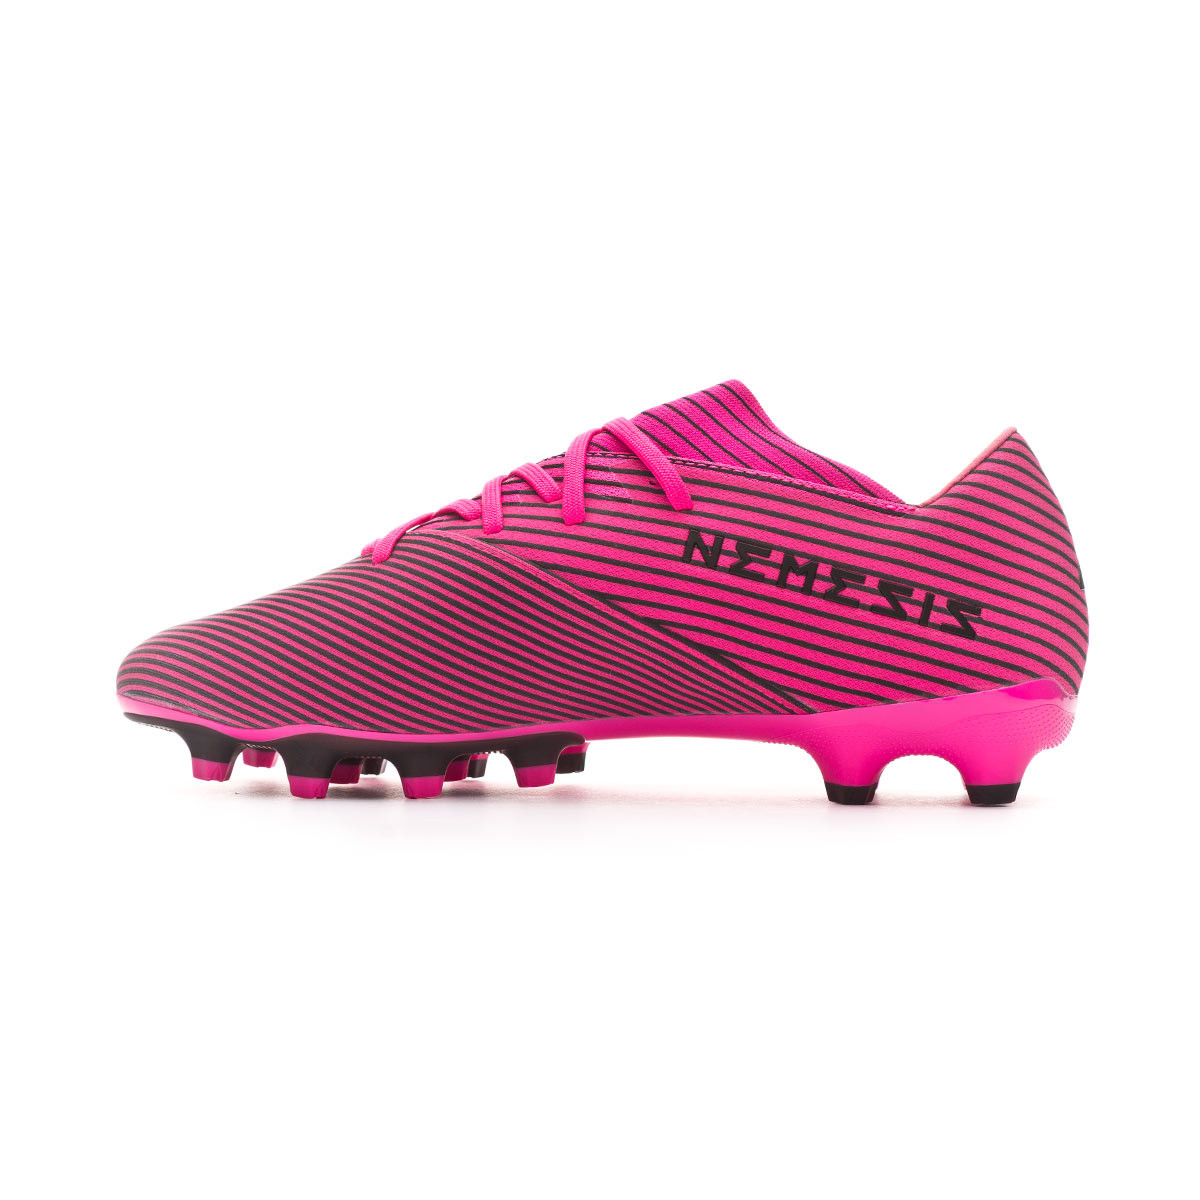 Football Boots Adidas Nemeziz 19 2 Mg Shock Pink Core Black Shock Pink Football Store Futbol Emotion